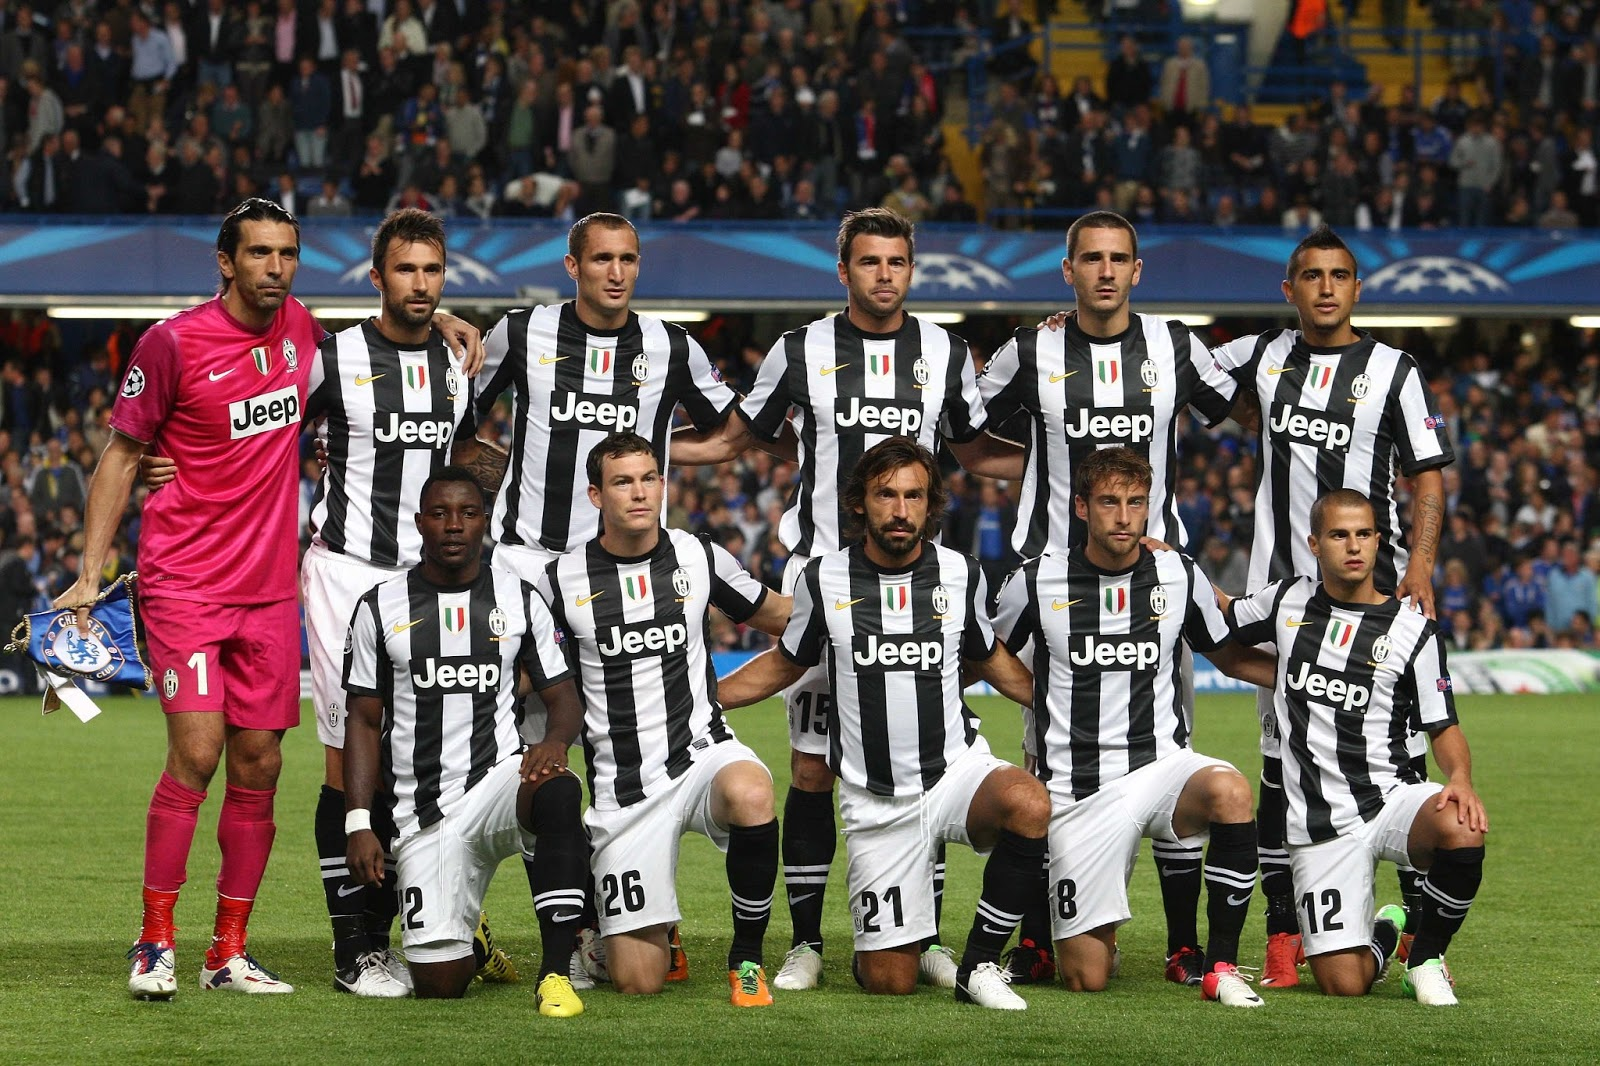 Juventus Football Club: Free HD Juventus Football Club Wallpaper